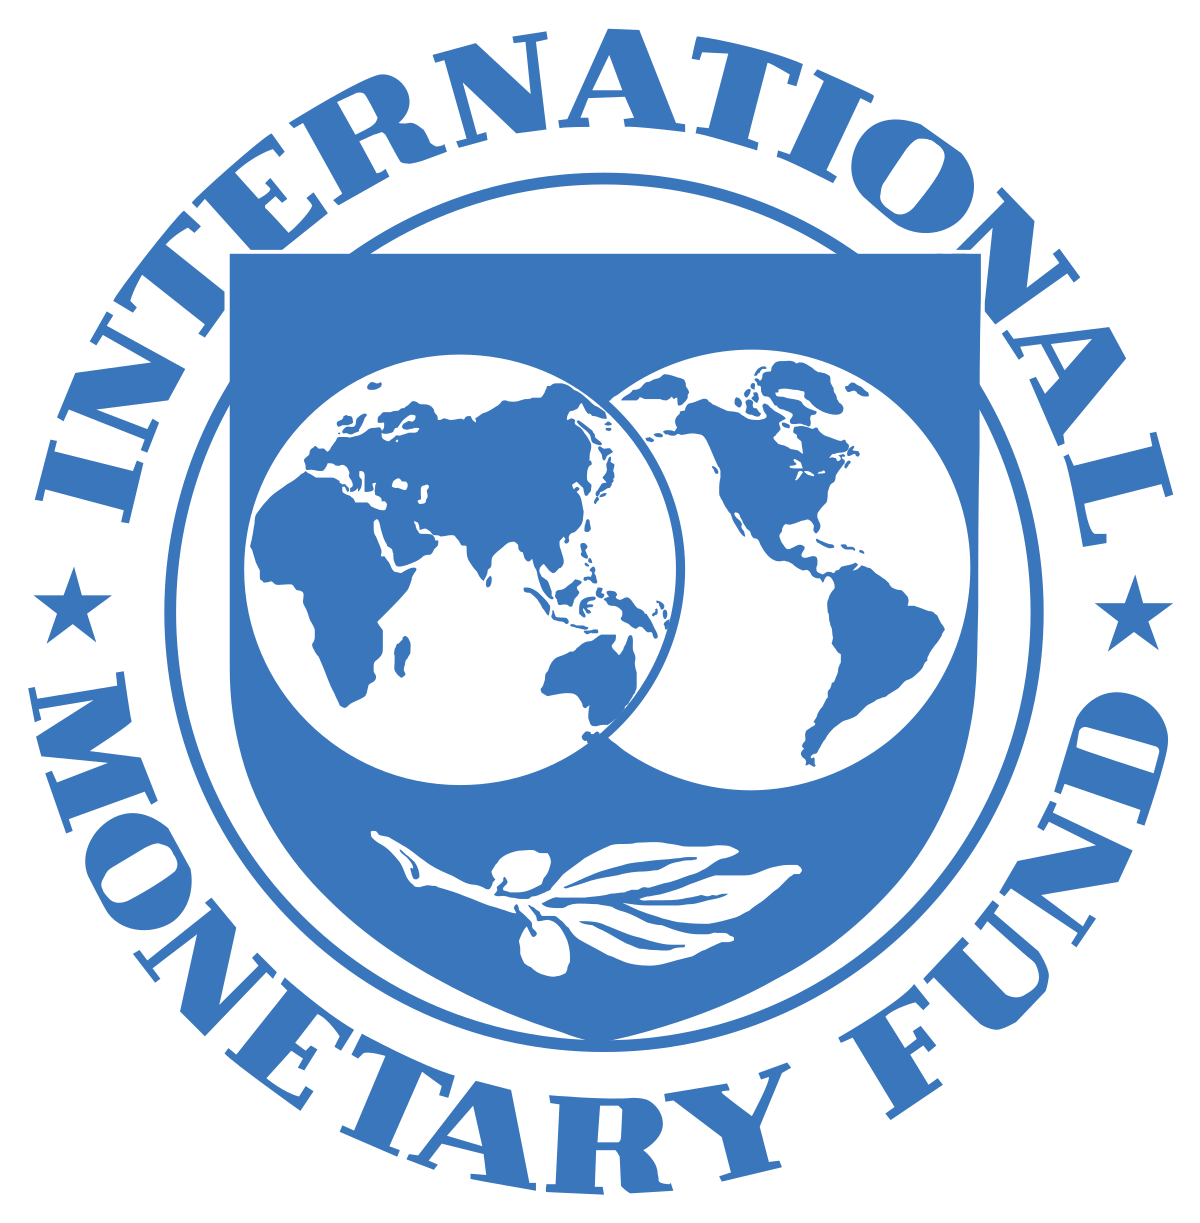 IMF Online course on Financial Market Analysis